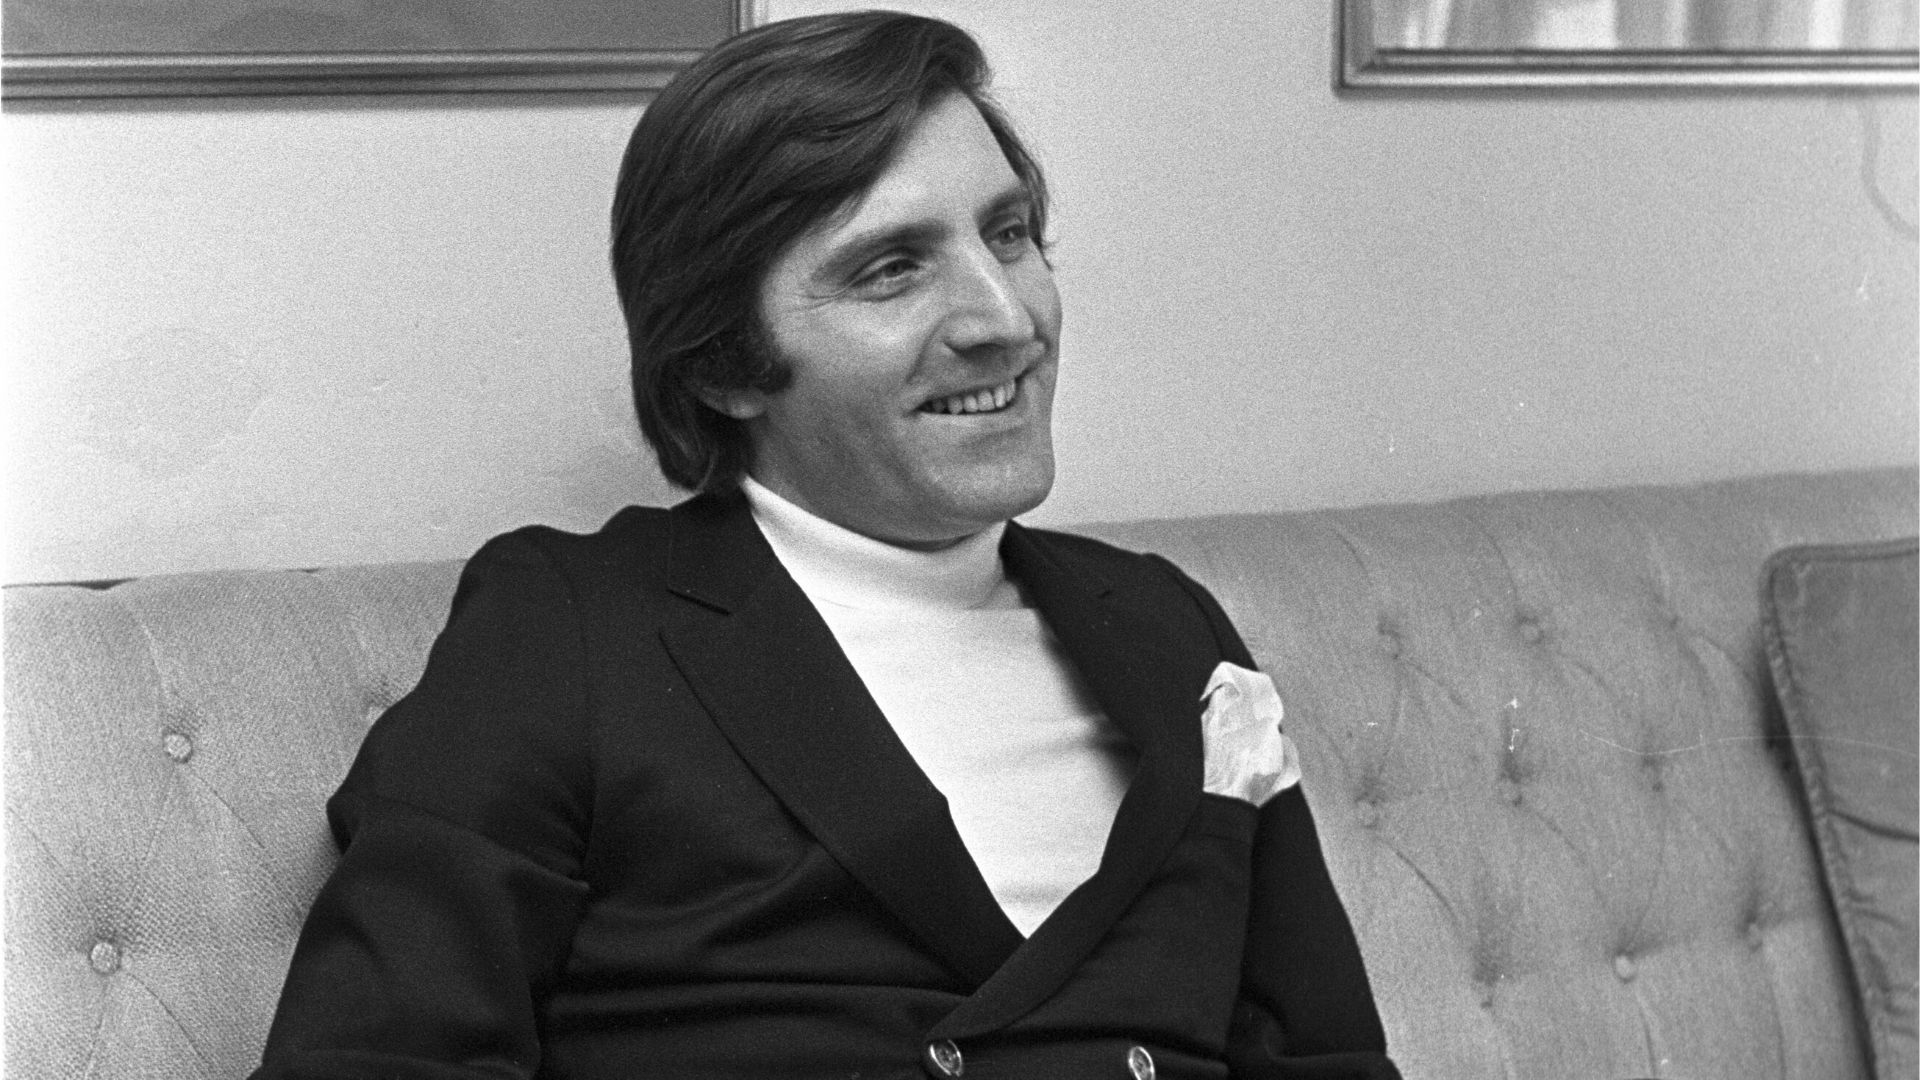 French Fashion Designer Emanuel Ungaro Has Died Aged 86